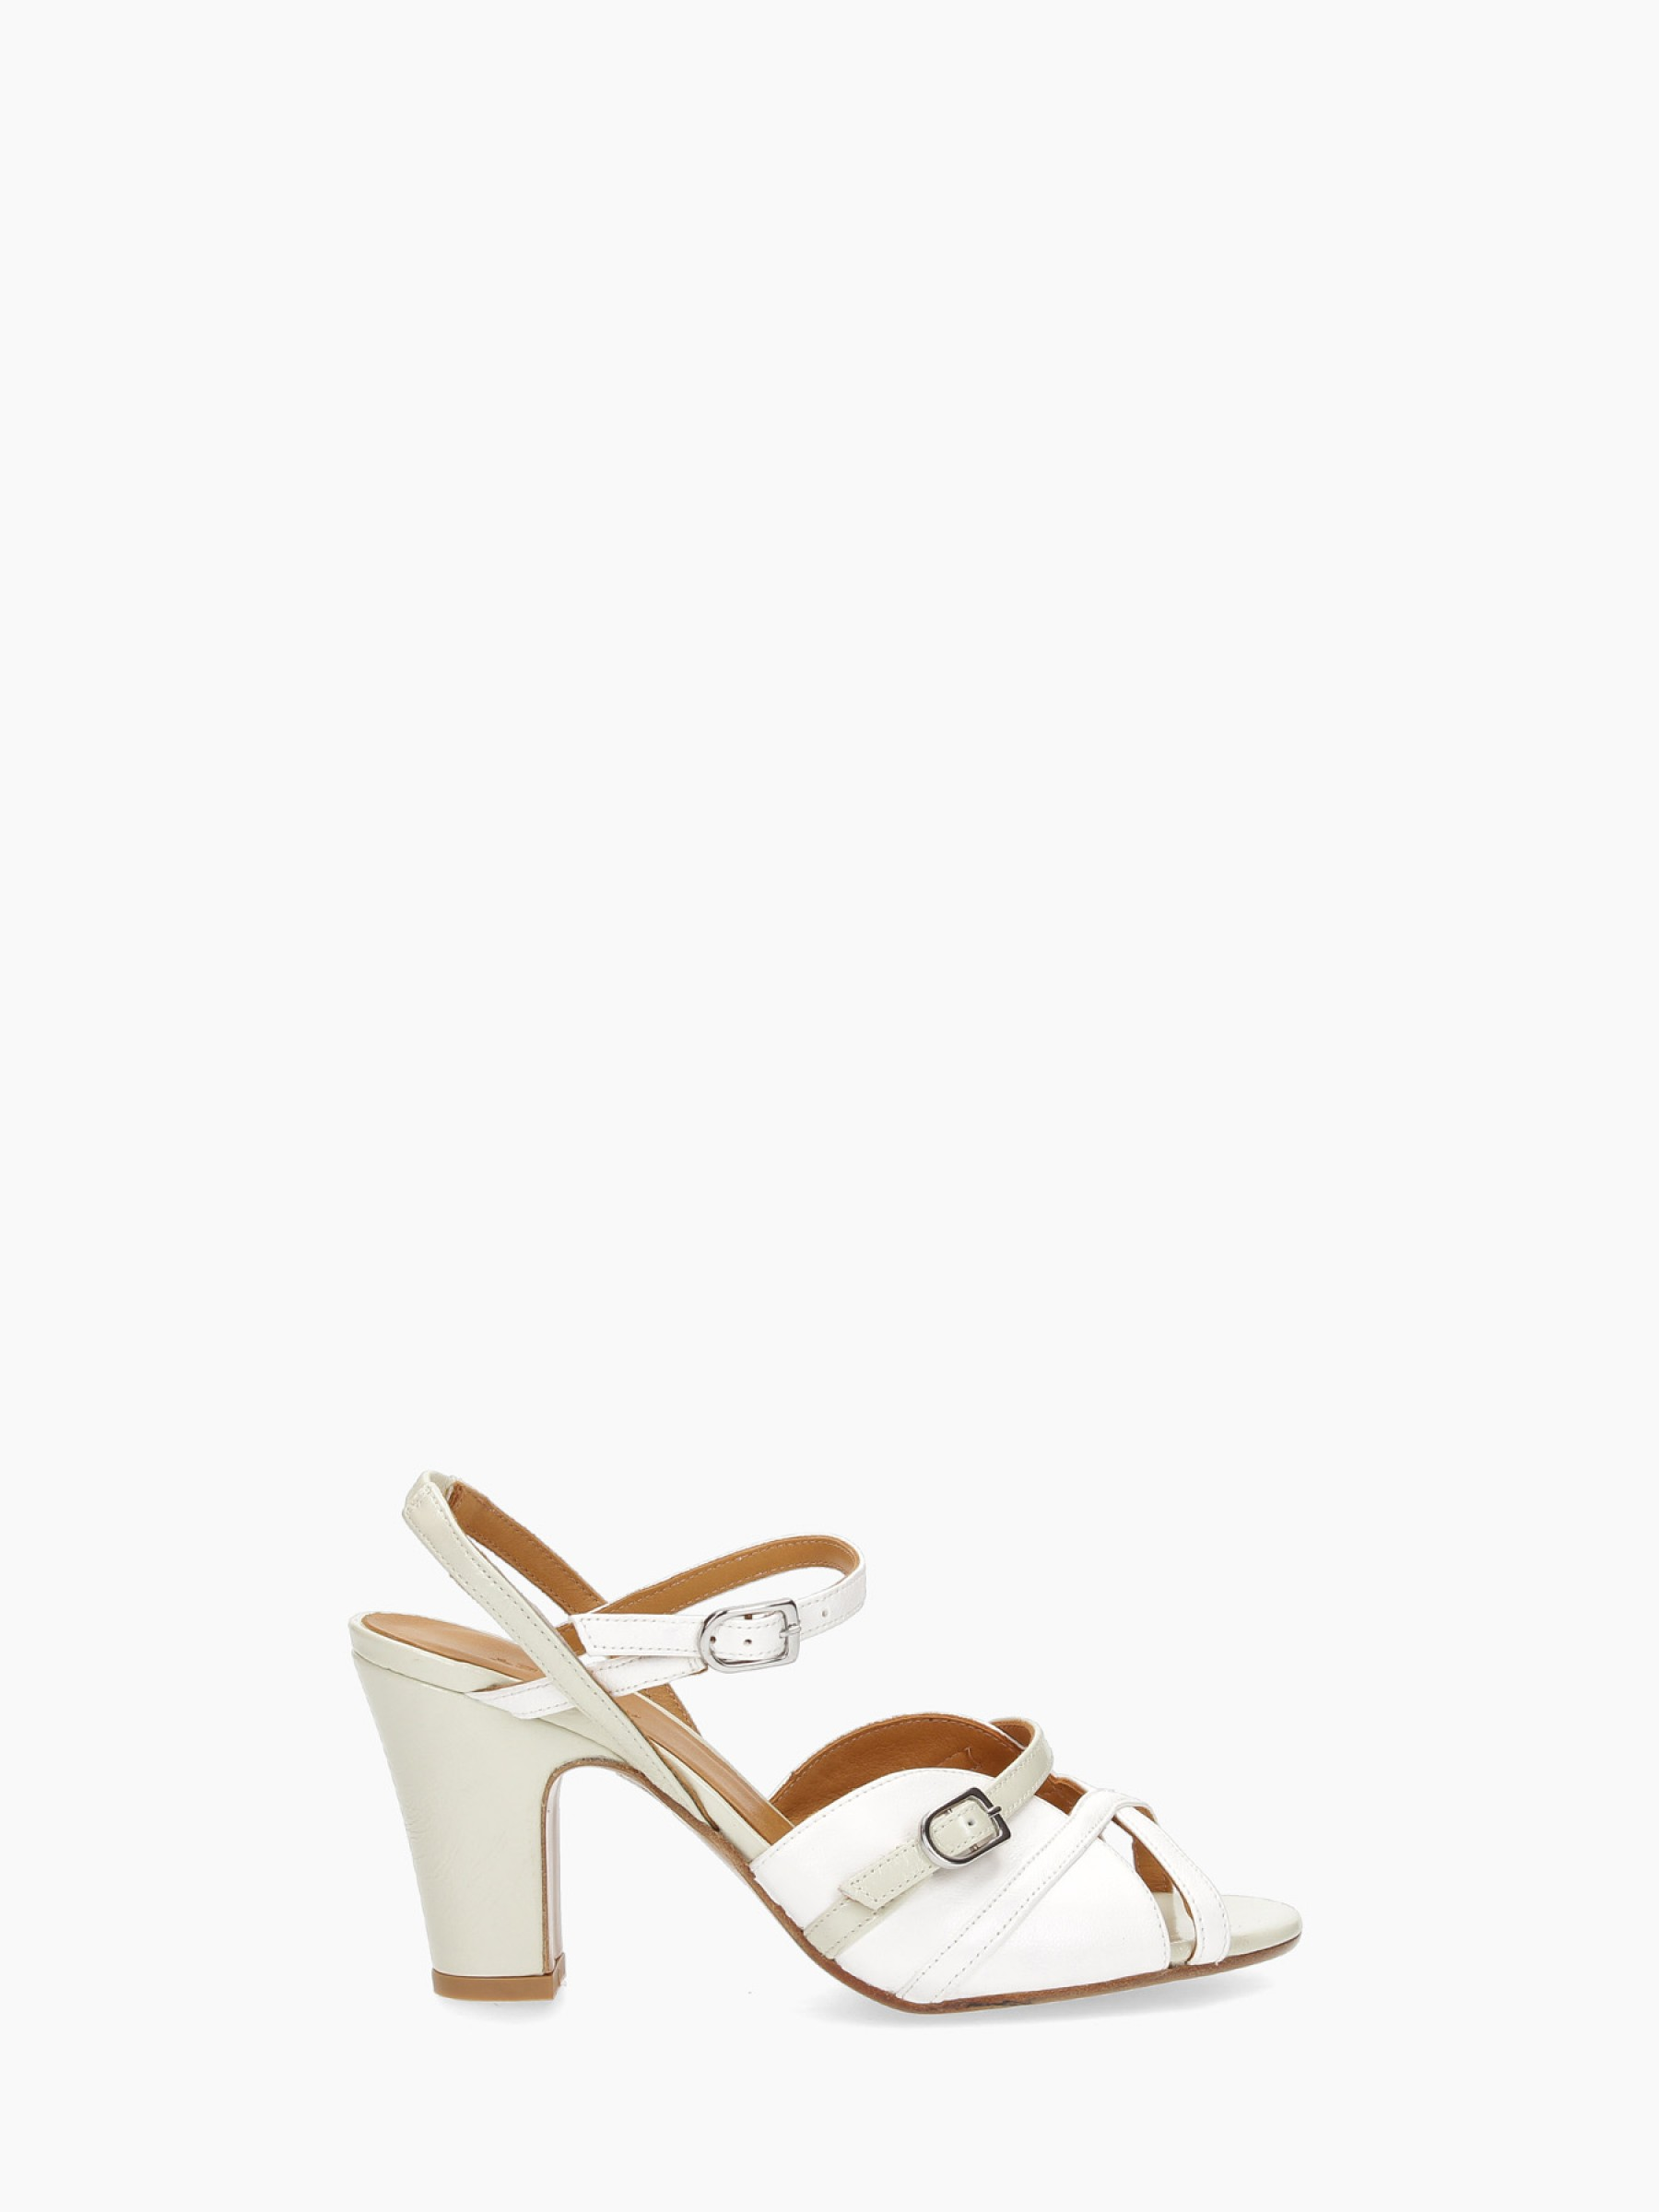 21438-OFF-WHITE Audley London PE2020